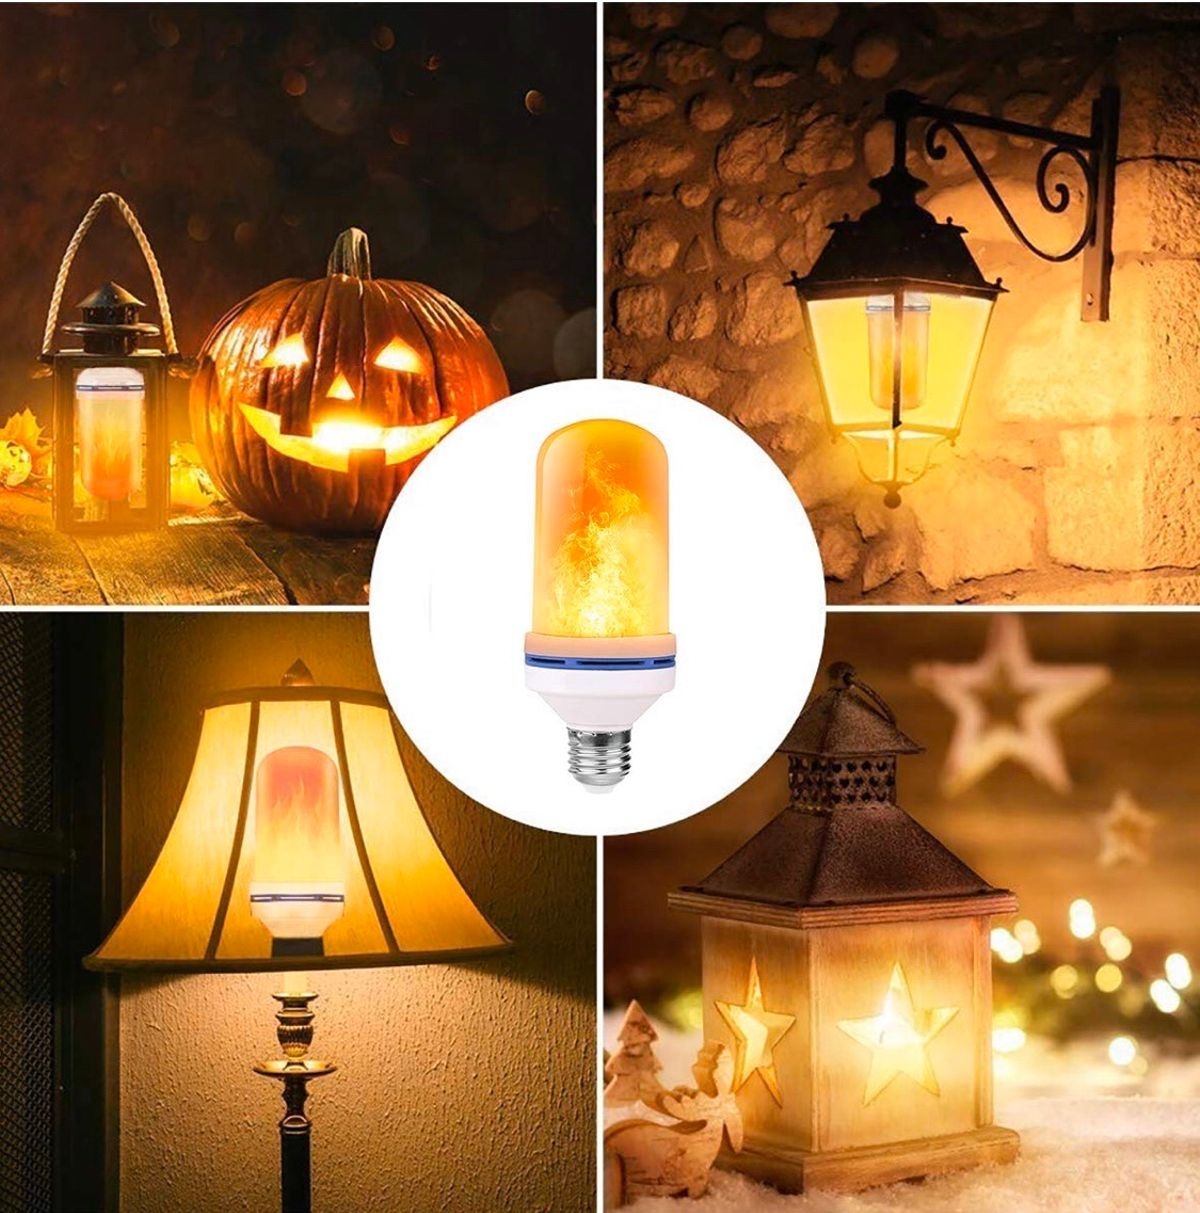 Halloween-LED Flame Effect Light Bulb-With Gravity Sensing Effect